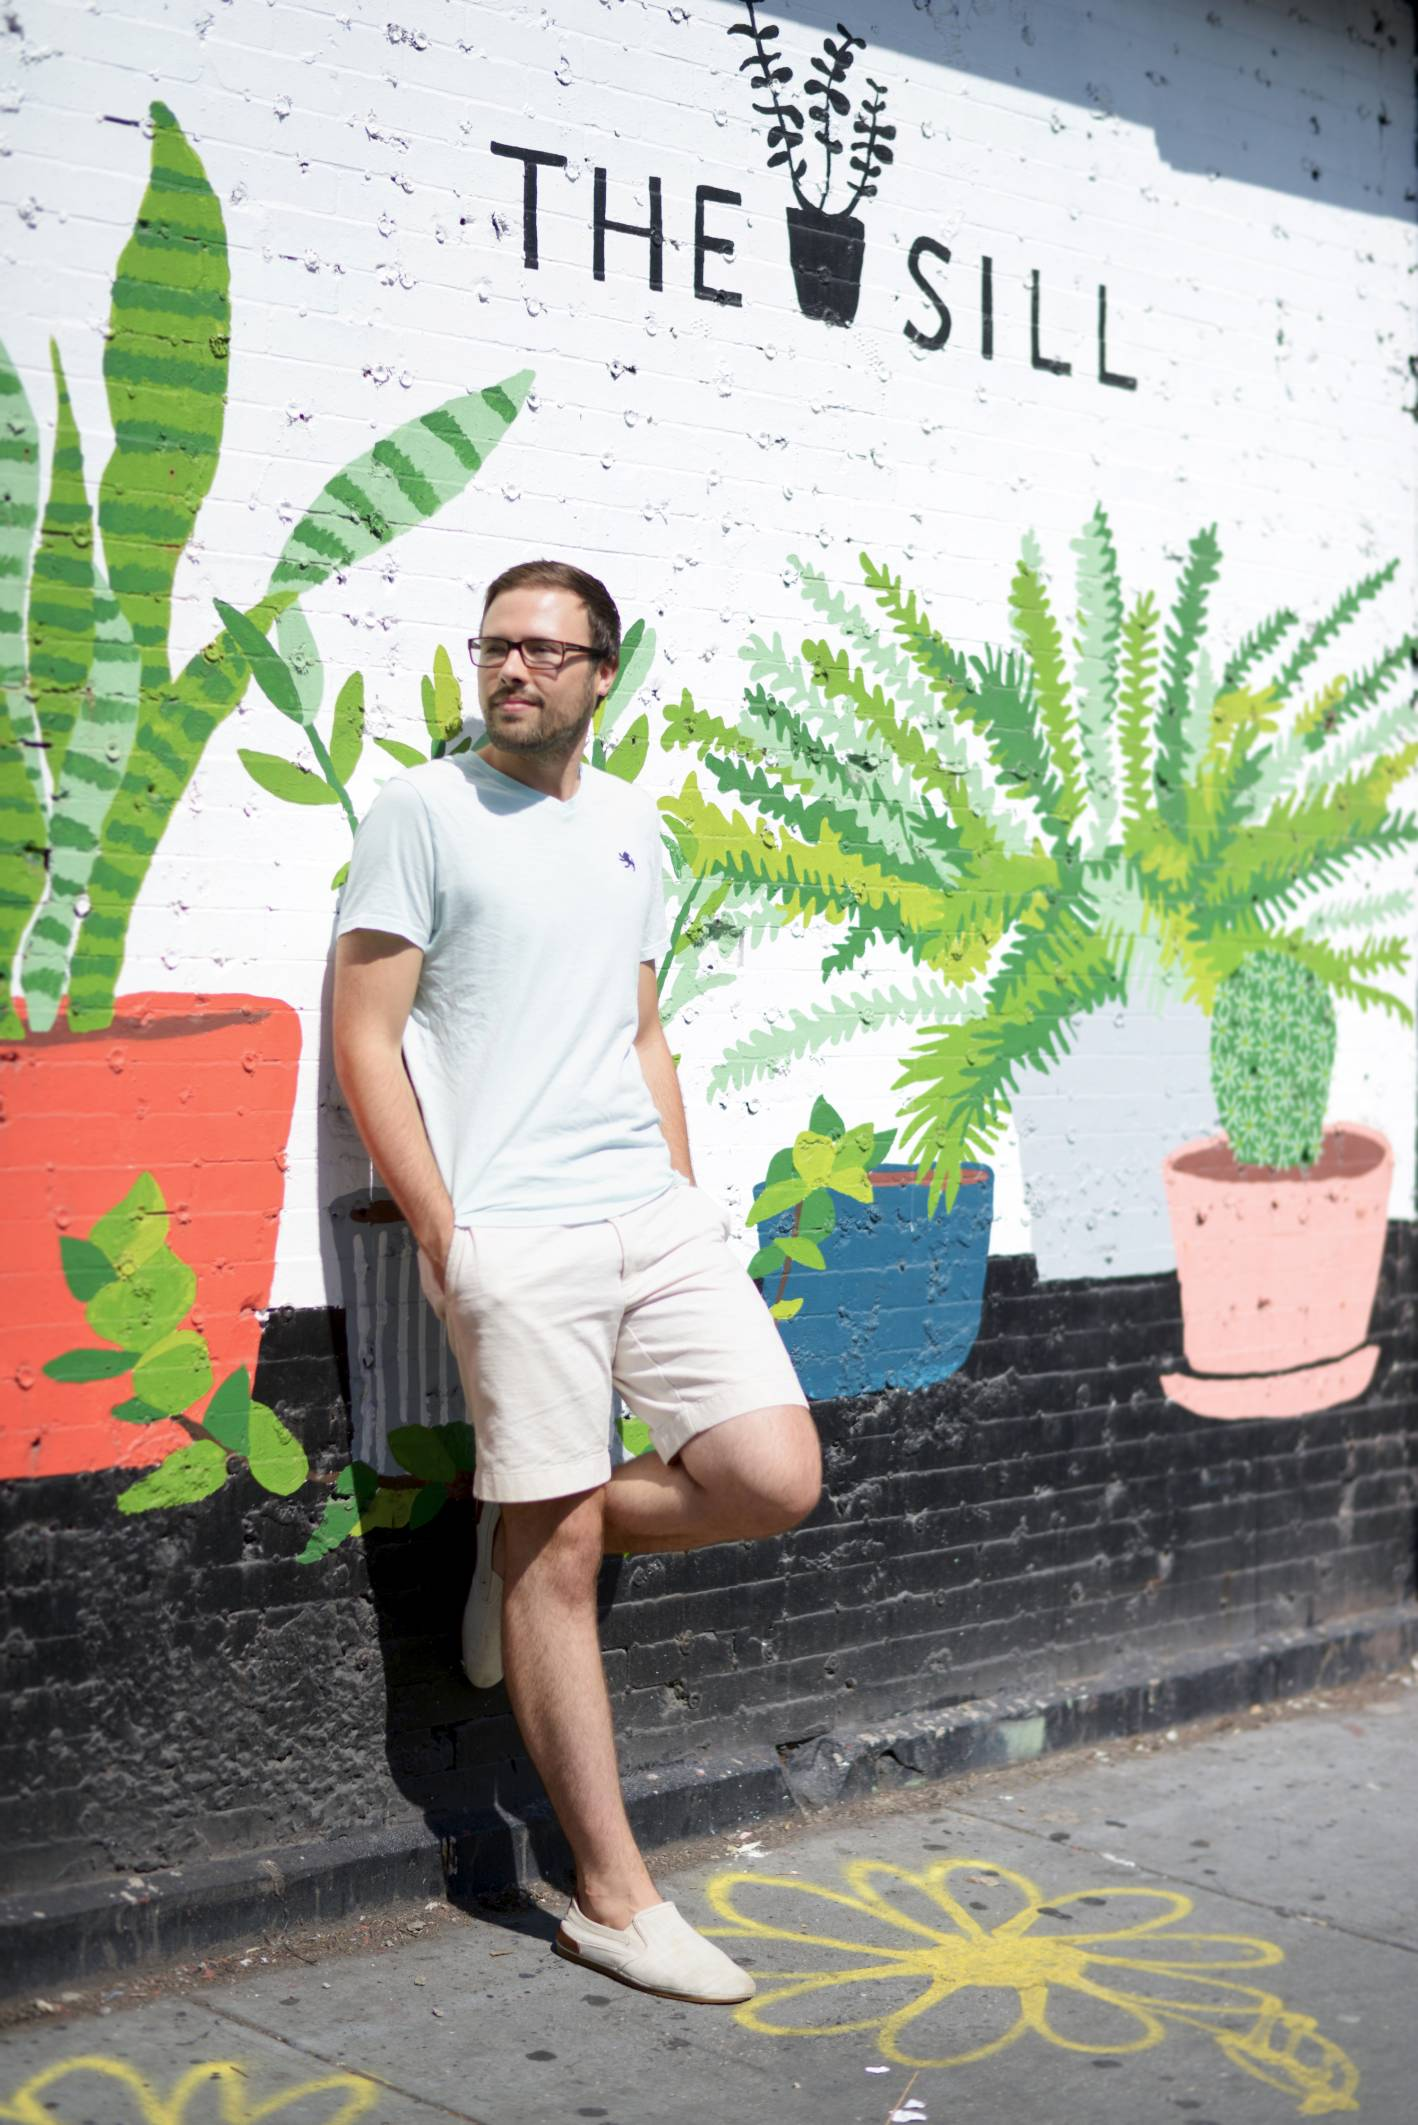 christopher the sill, the sill, plants, office style, what he wore, what he wore the sill office style